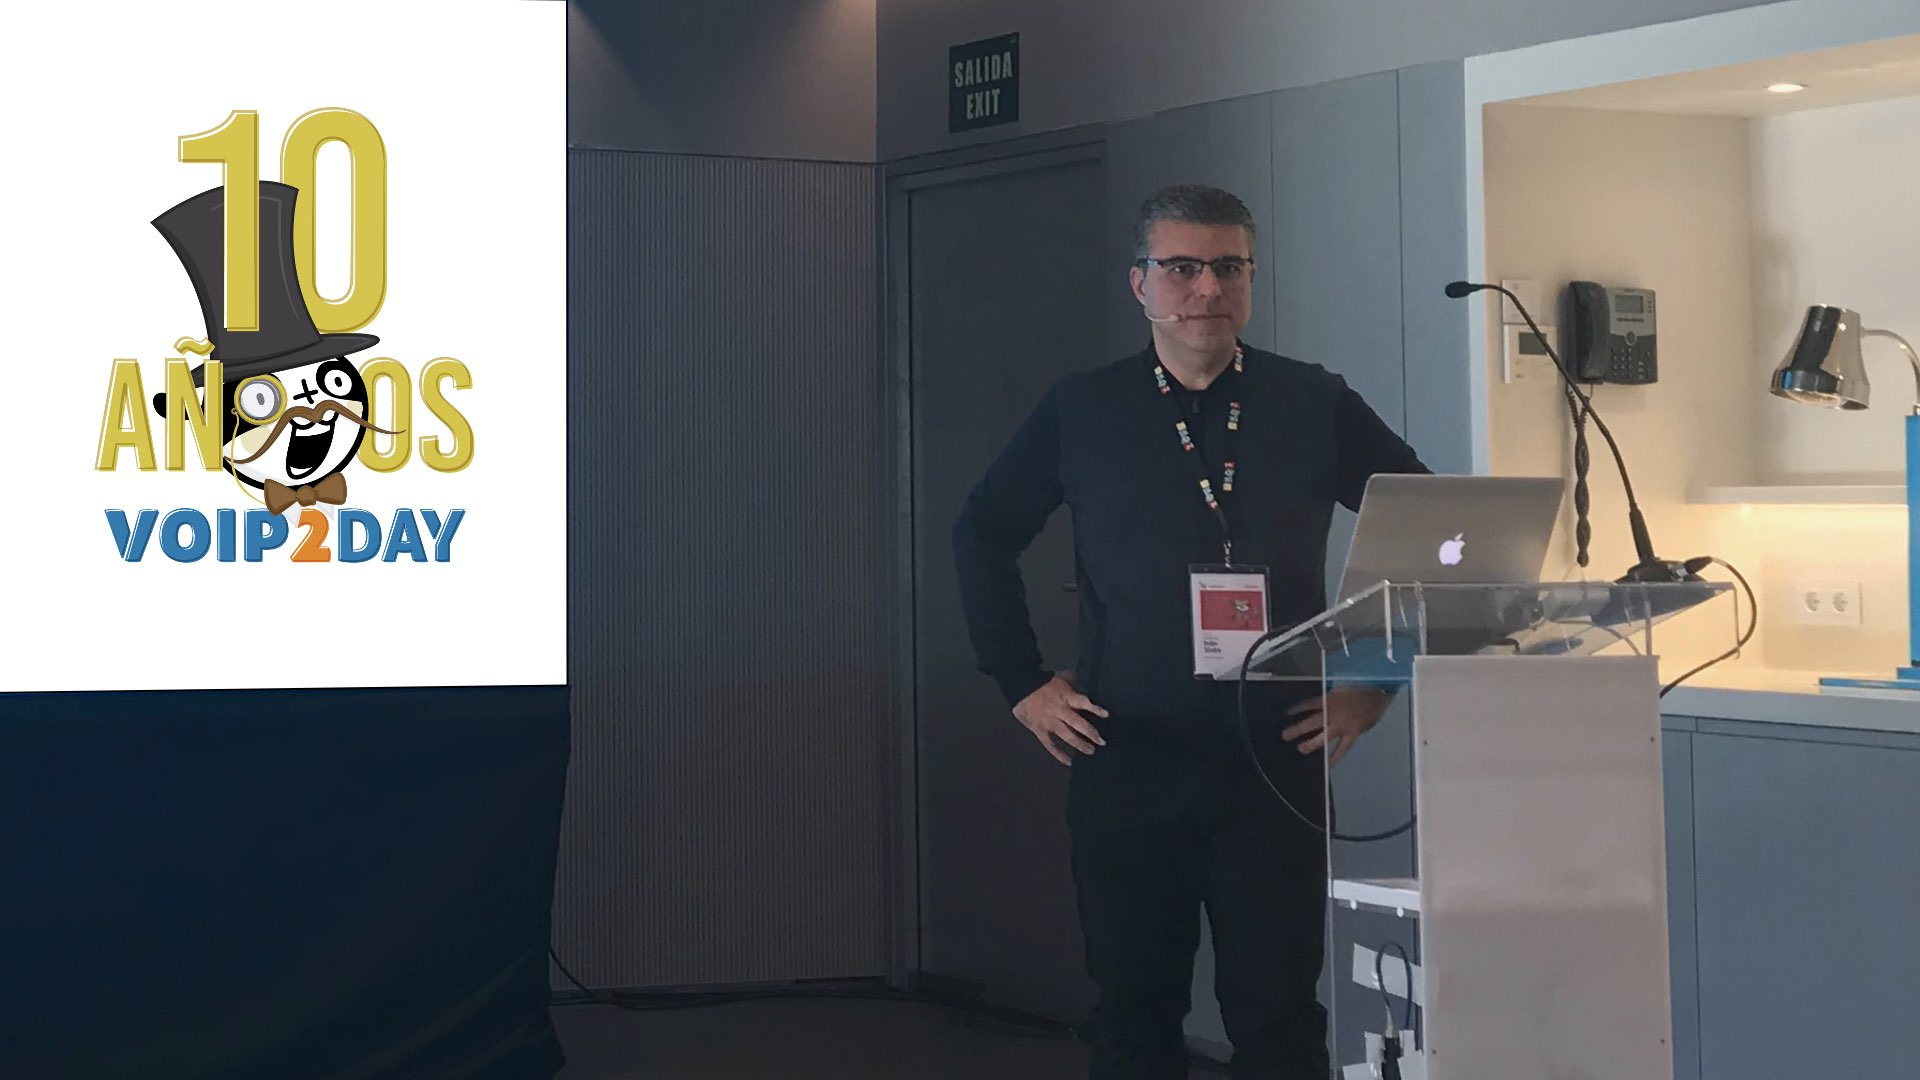 Iván Sixto during voip2day 2017 conference